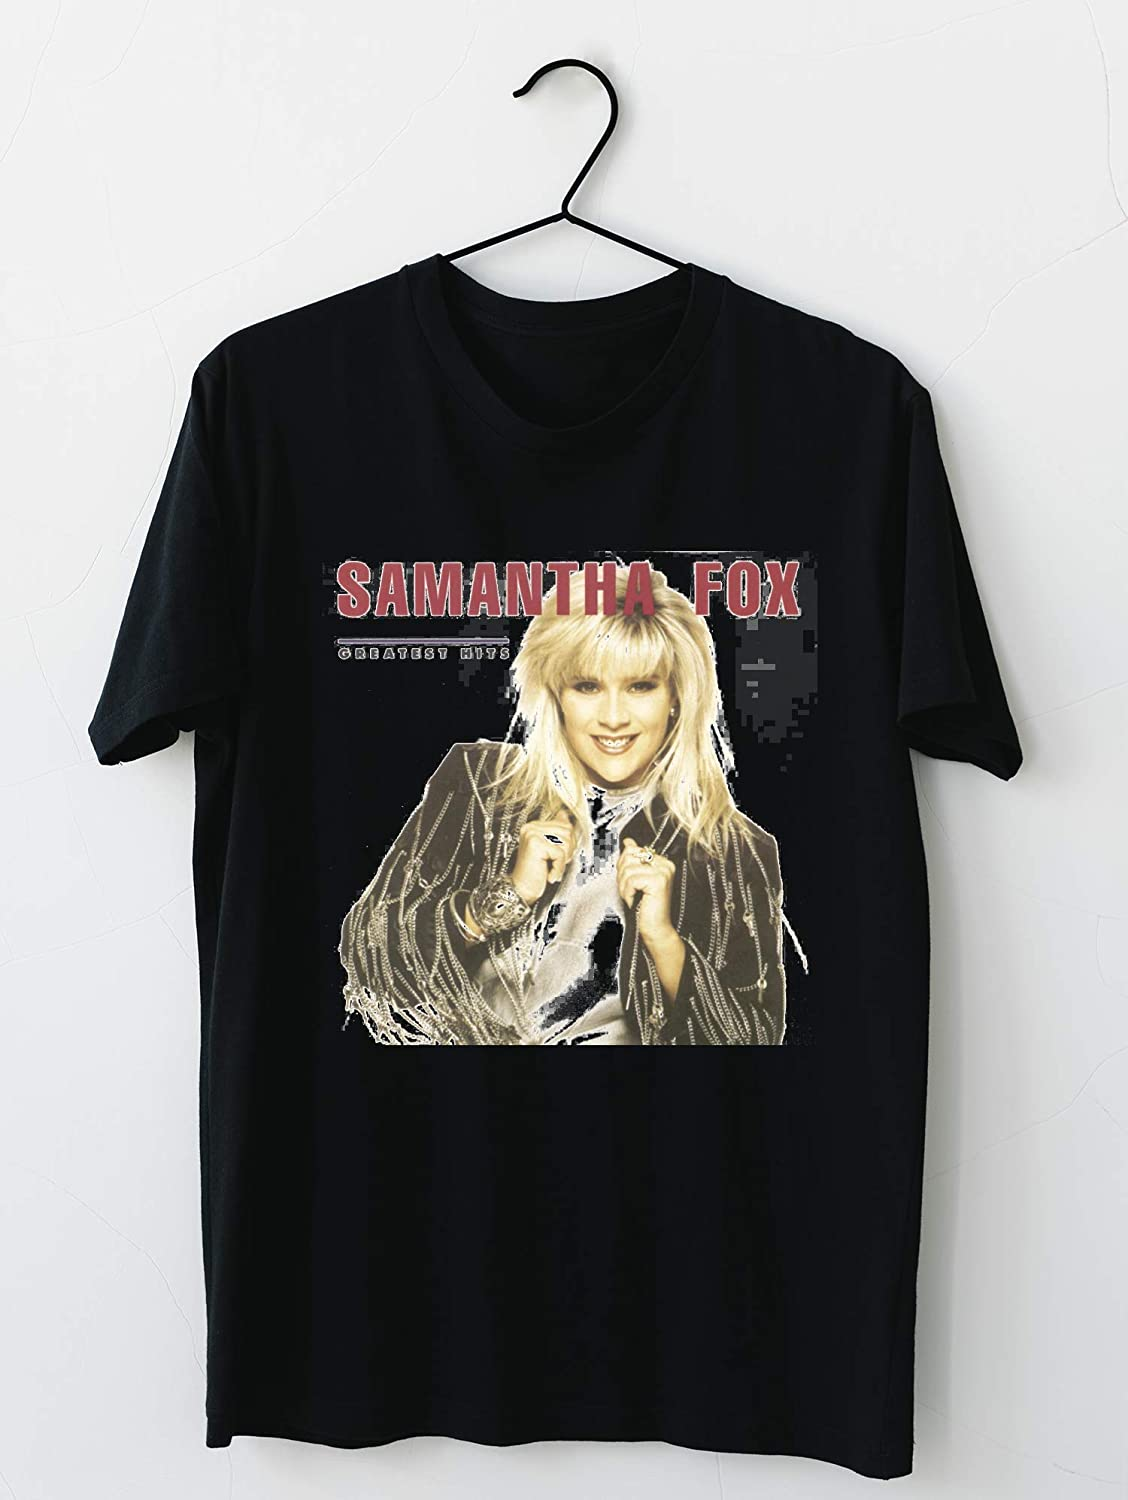 Samantha Fox - Greatest Hits - T-shirt For Gift Father Mother